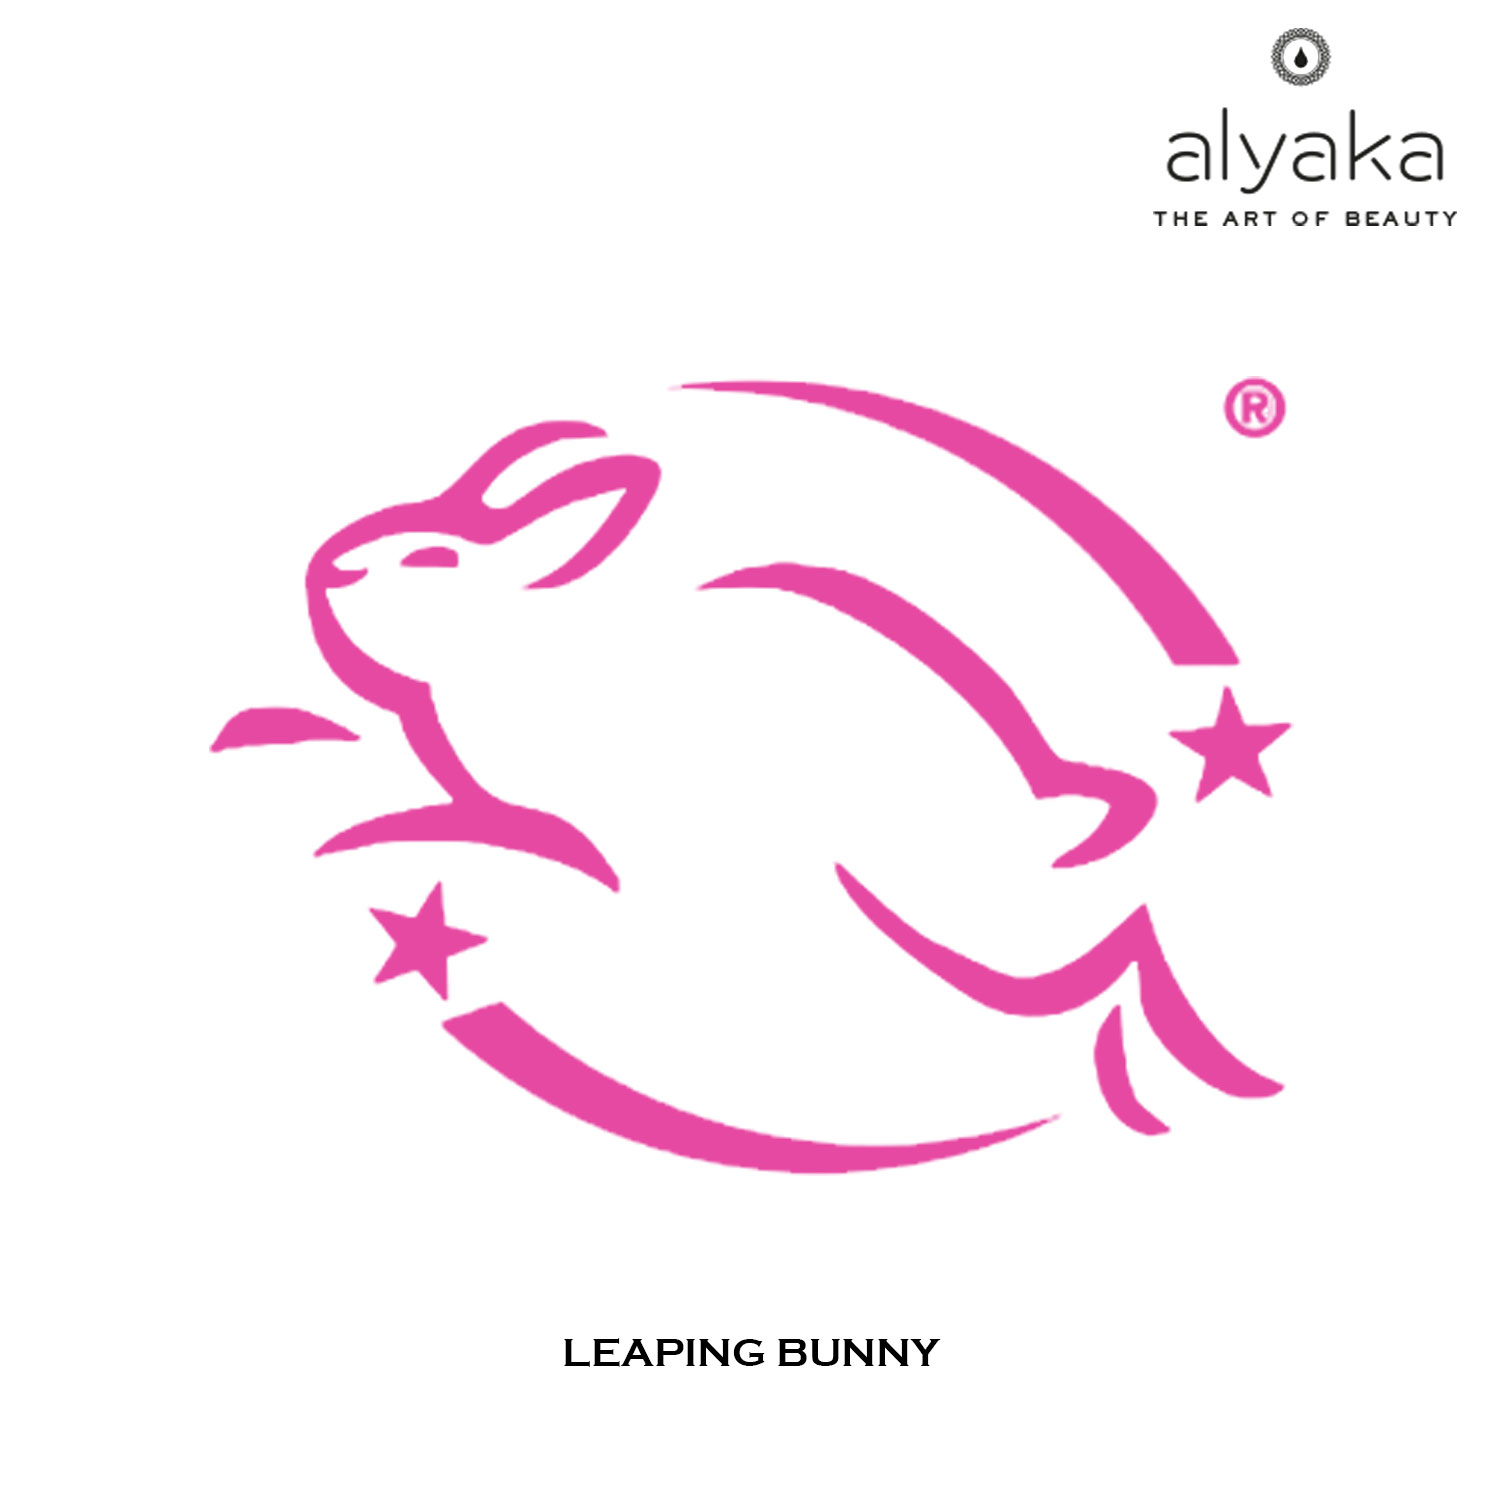 Leaping Bunny Symbol in Beauty Products